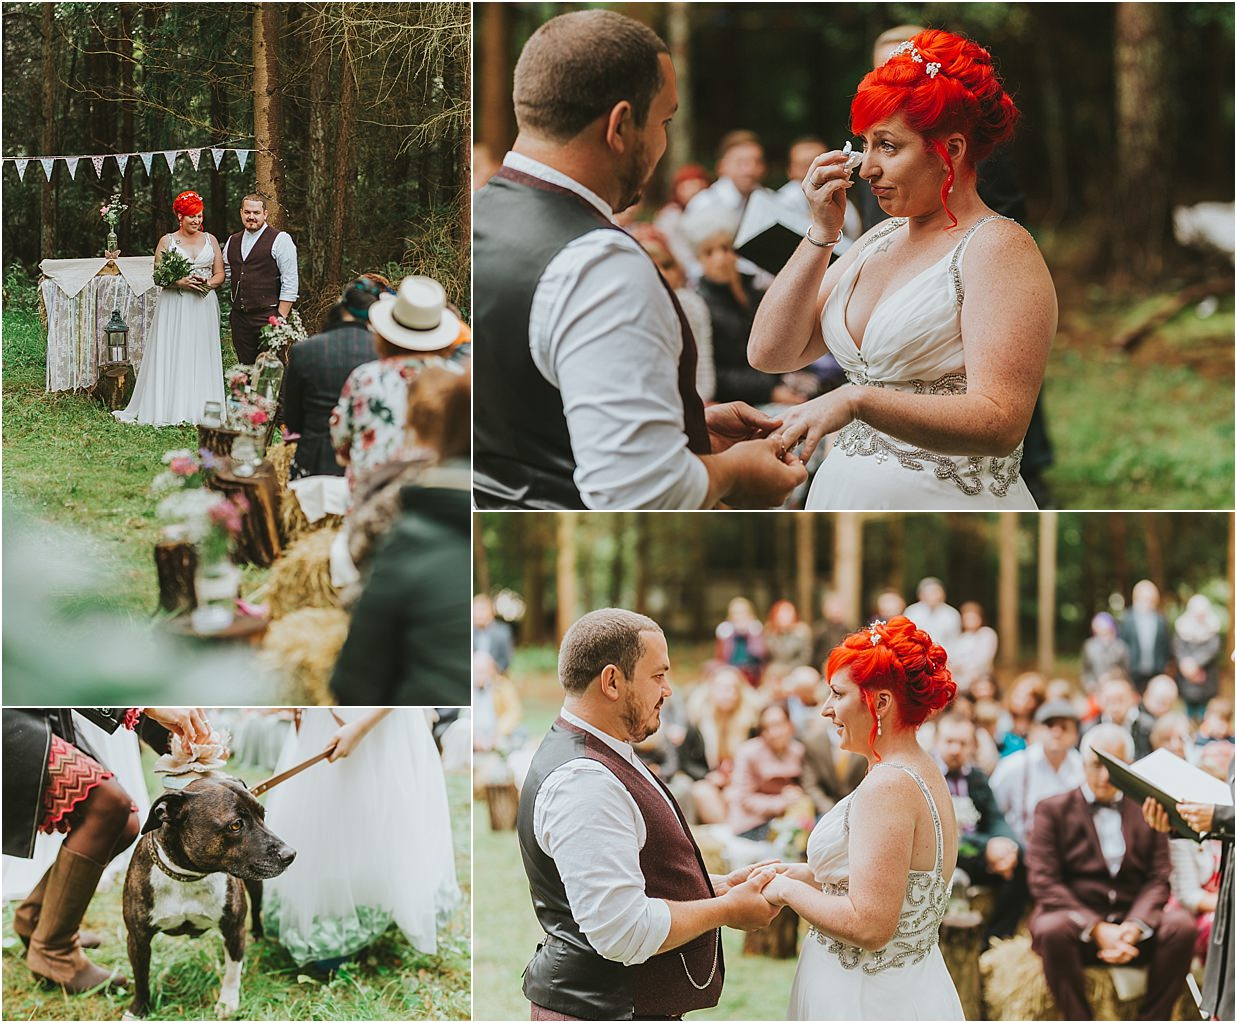 Norfolk Wedding Photograhy Bradmoor Woods Kings Lynn 1029 - Annan // Norfolk Wedding Photographer